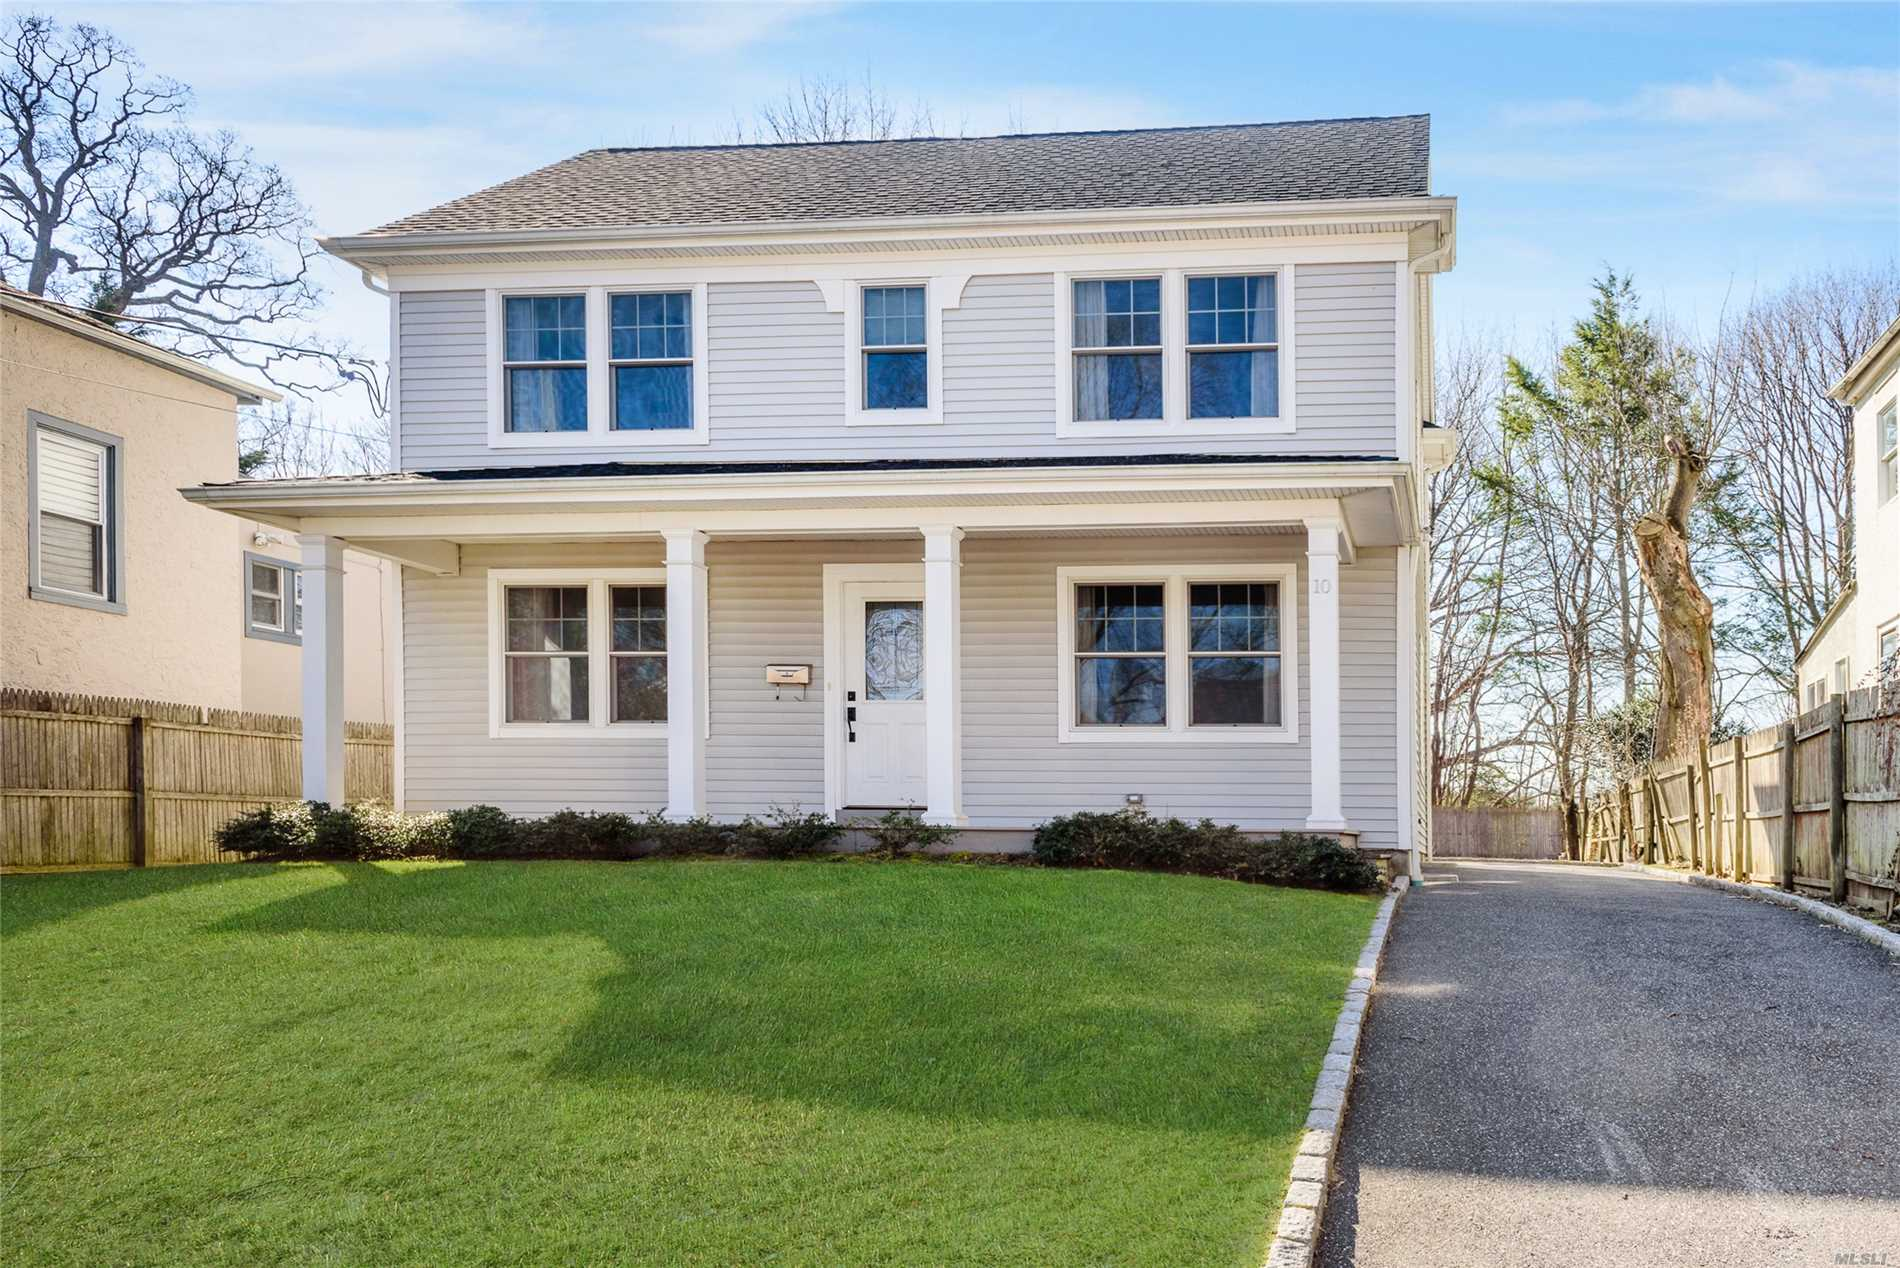 Move In To This Totally Renovated 4 Bedroom, 2 Bath Front Porch Colonial On Dead End Street. Oversized Property, Huge Eik, LR, Den/Office. Hardwood Floors Throughout. CAC. House Completely Rebuilt In 2013.